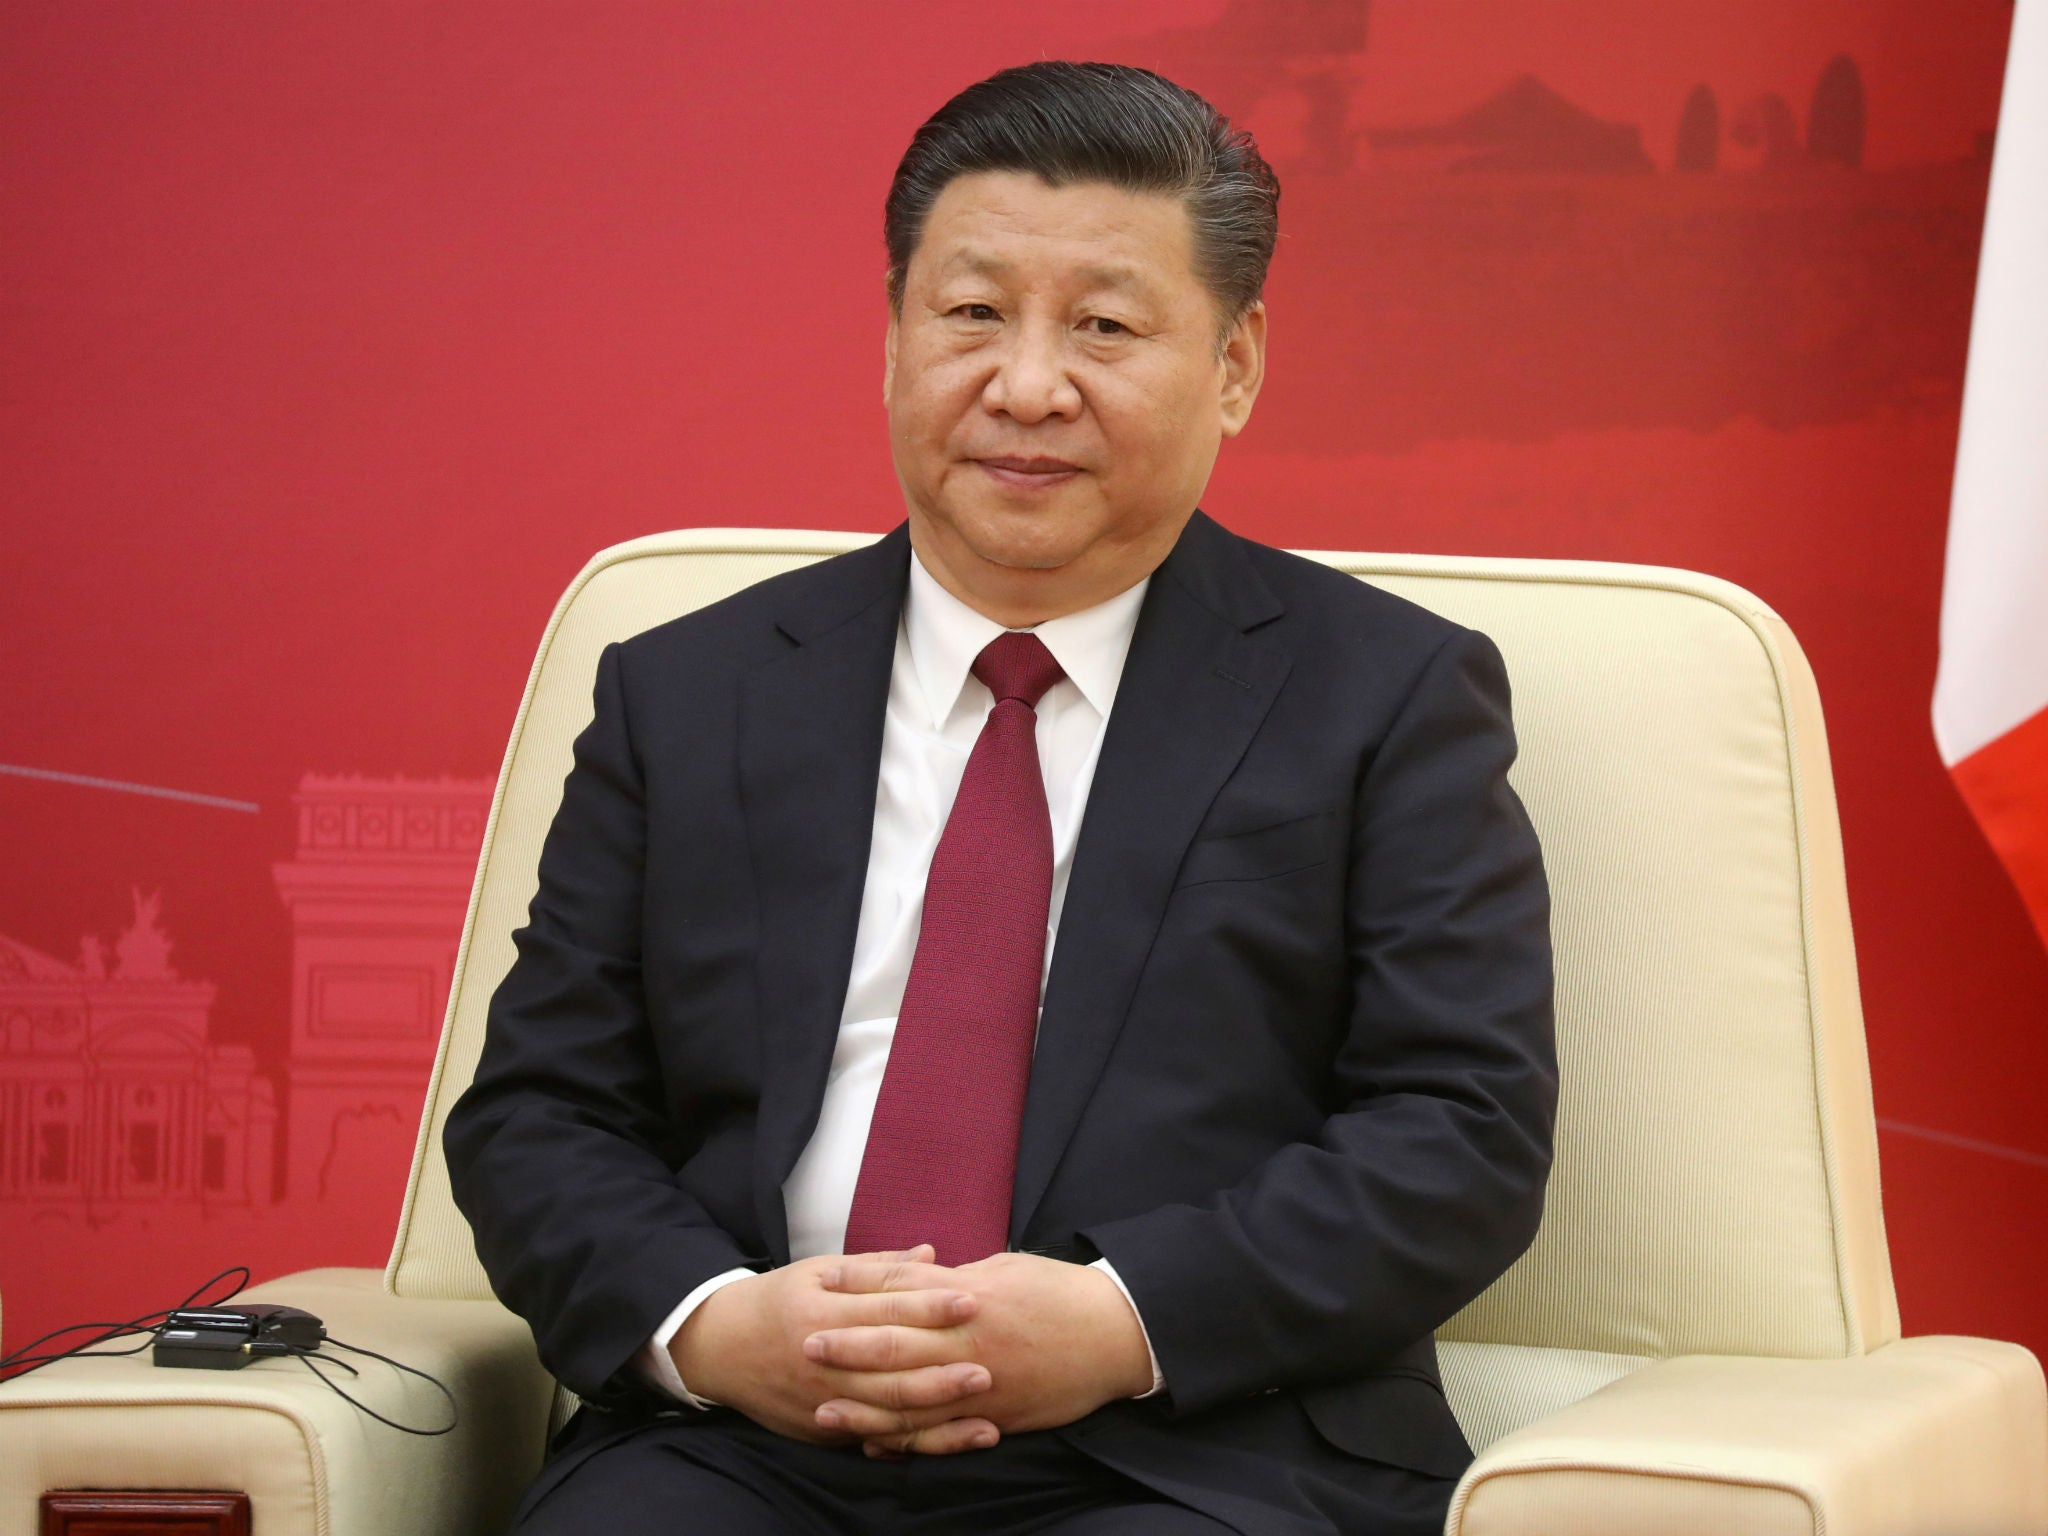 China: Why Xi Jinping decision is world superpower's most important  political change for decades | The Independent | The Independent